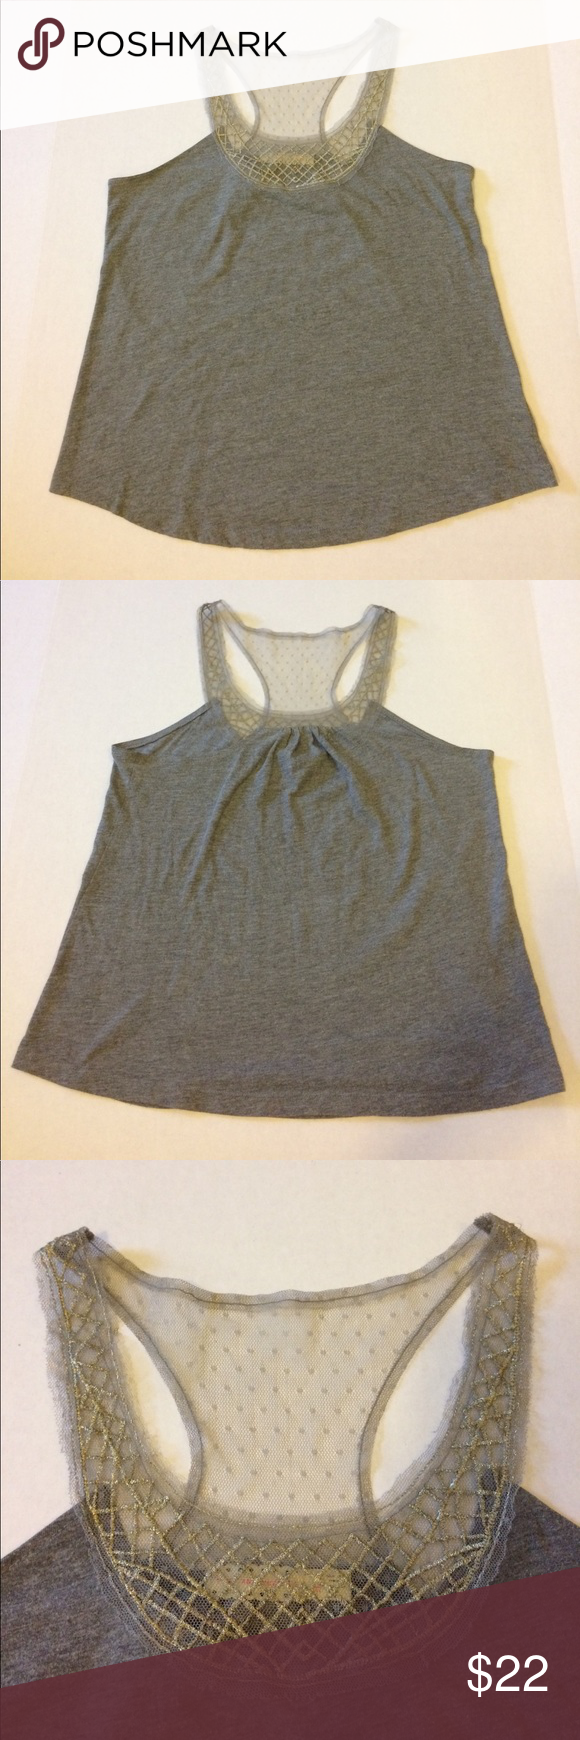 Urban Outfitters Pins and Needles Tank Gray tank with gray lace and gold embroidered accents. 50% polyester/40% cotton/10% viscose. Urban Outfitters Tops Tank Tops